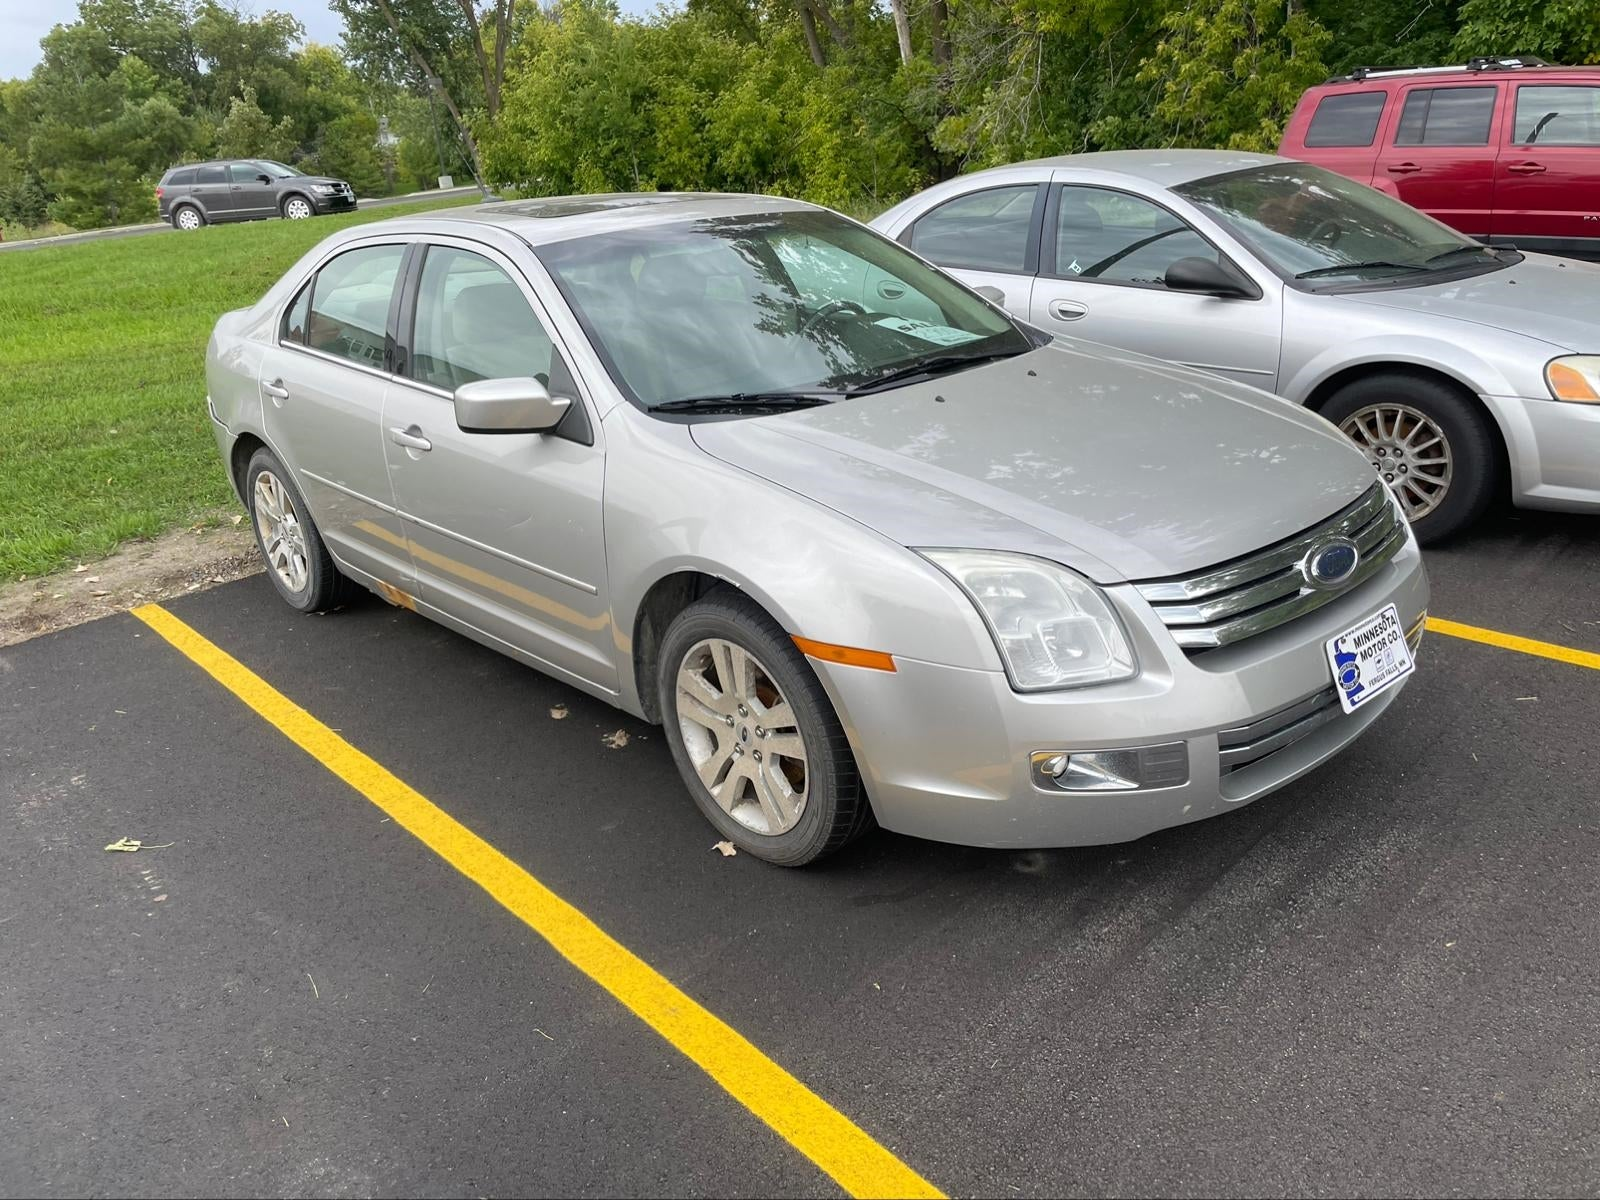 Used 2008 Ford Fusion SEL with VIN 3FAHP08158R205665 for sale in Fergus Falls, Minnesota